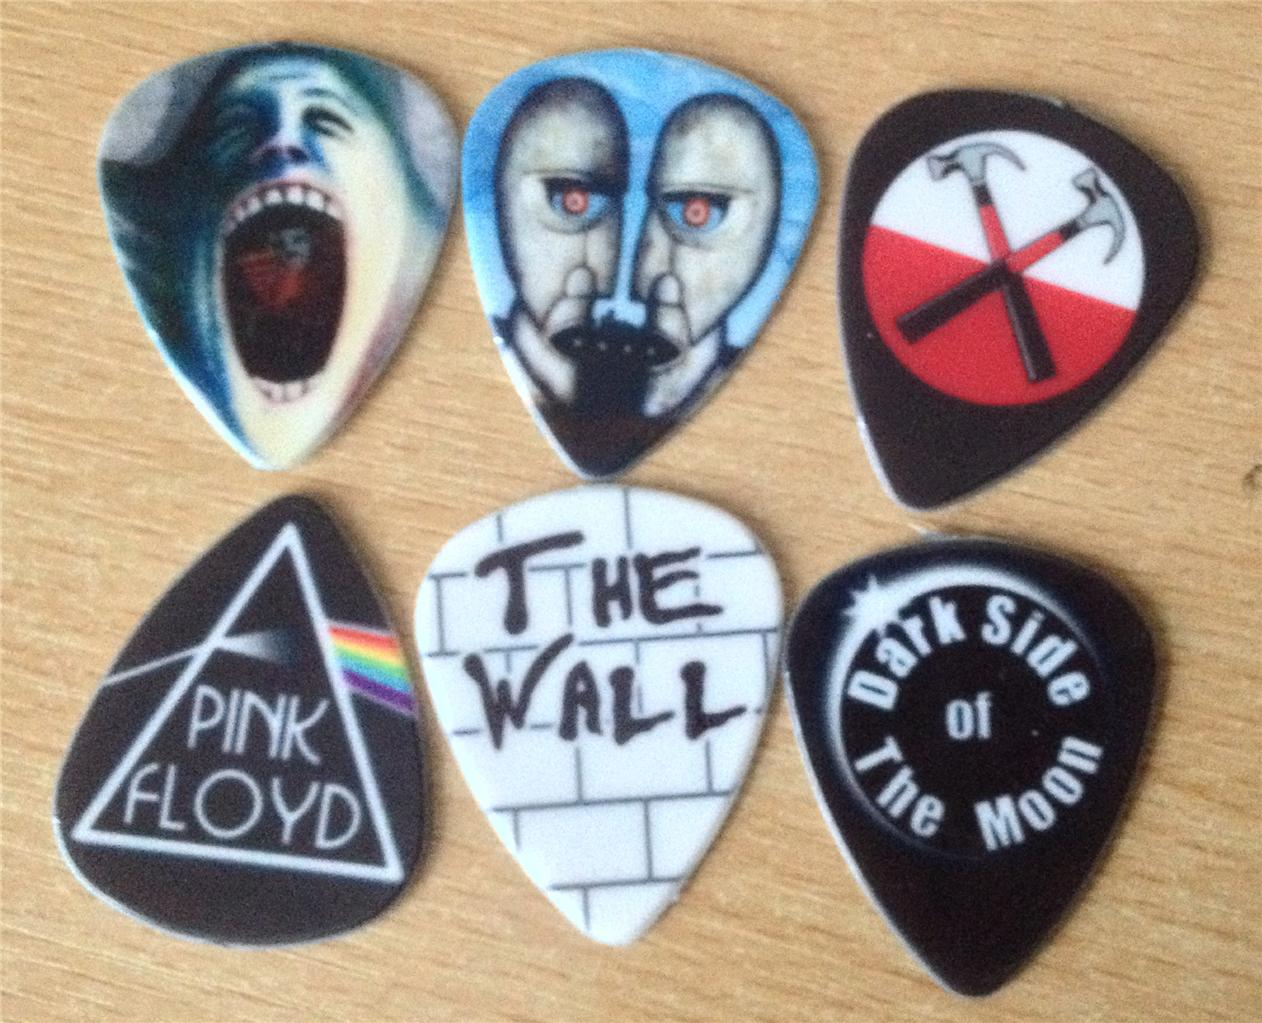 pink floyd the wall custom electric or acoustic guitar plectrums picks ebay. Black Bedroom Furniture Sets. Home Design Ideas